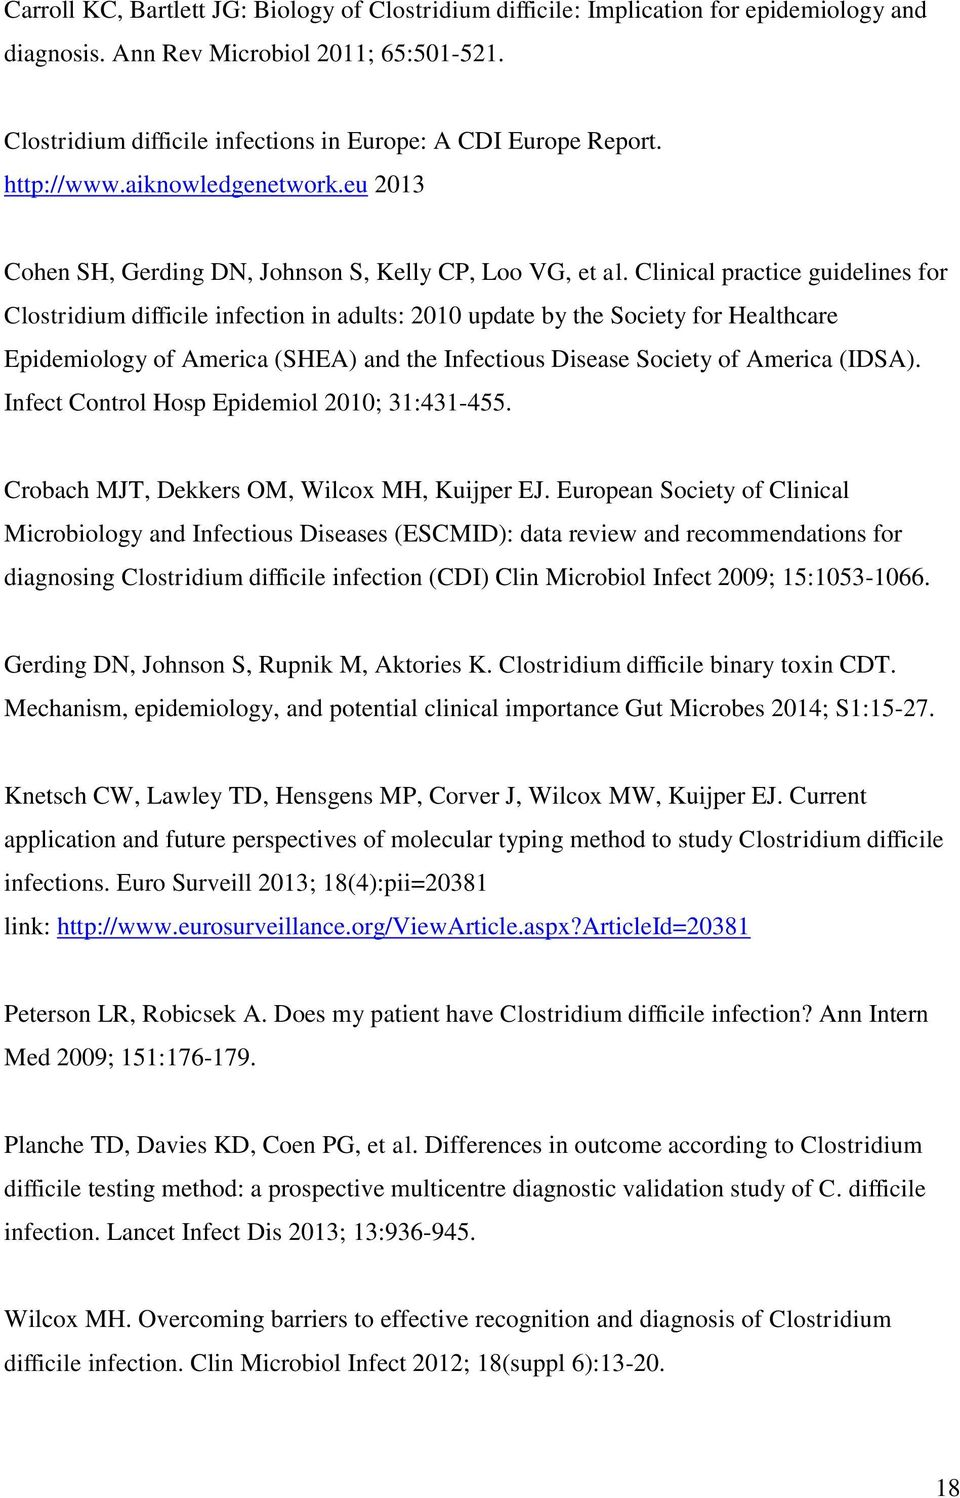 Clinical practice guidelines for Clostridium difficile infection in adults: 2010 update by the Society for Healthcare Epidemiology of America (SHEA) and the Infectious Disease Society of America